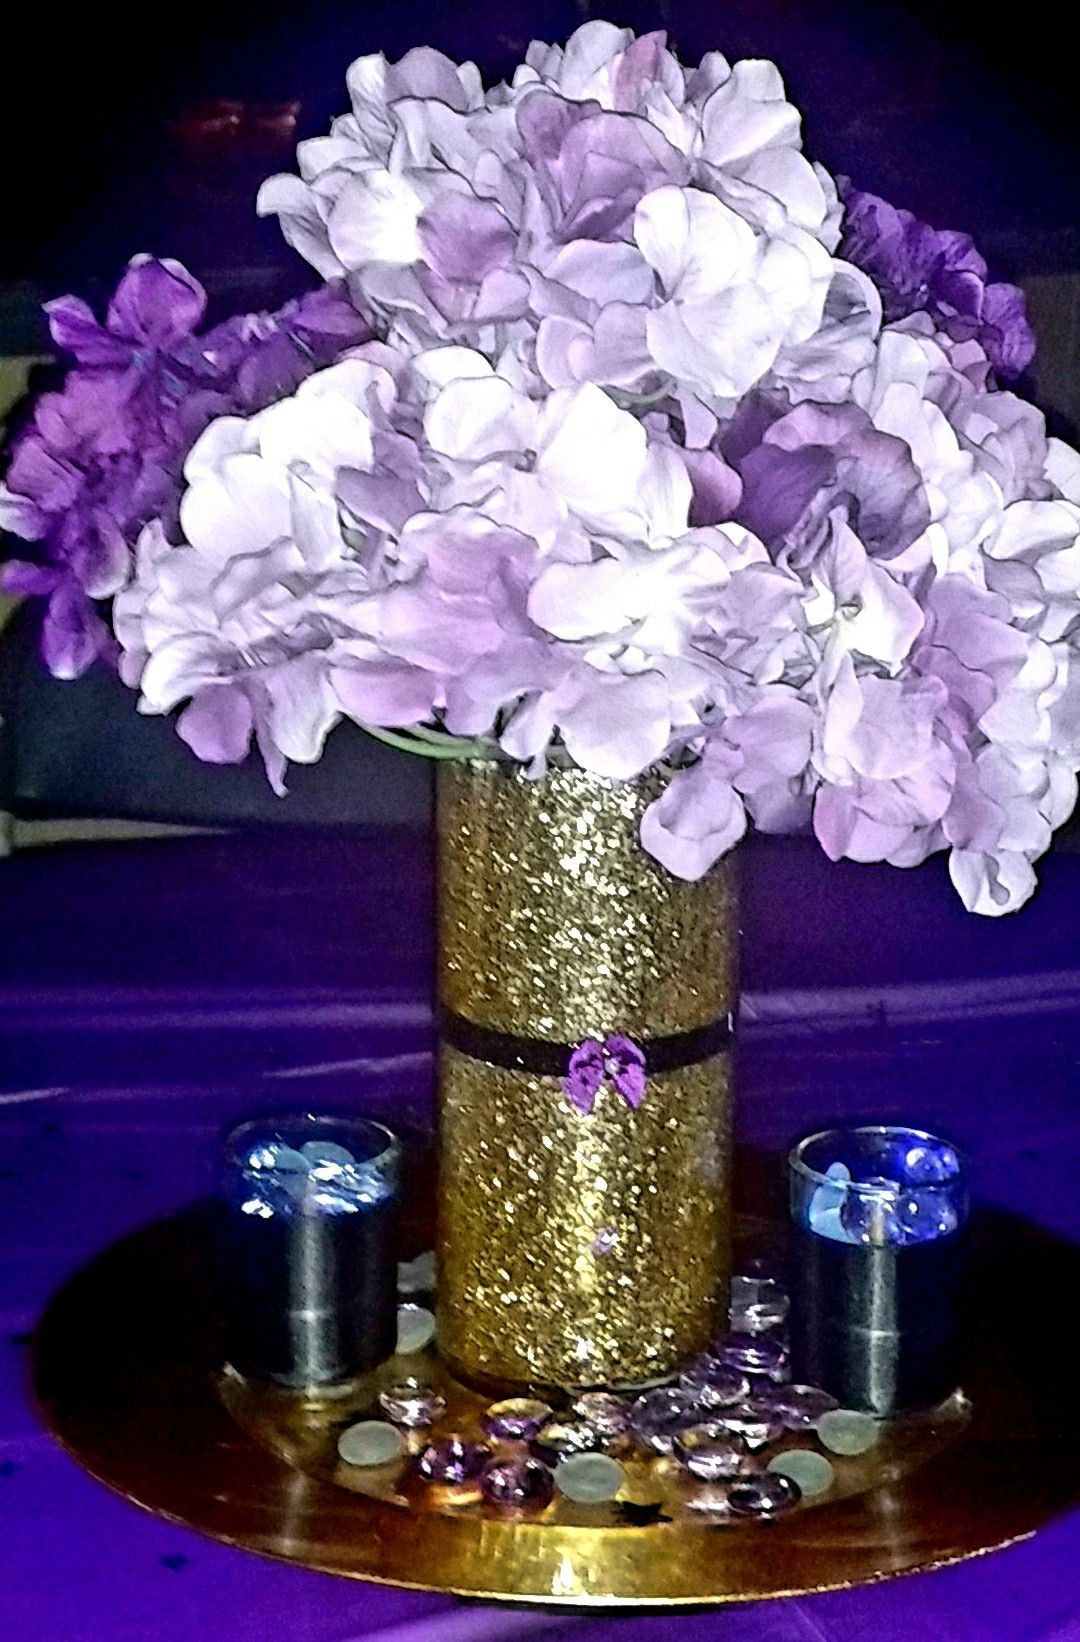 Mercury Glass Pedestal Vase Of Vase Floral Gold Centerpiece Picturesque Www Picturesboss Com Throughout Beautiful Gold Glitter Vase with Purple Hydrangeas Centerpiece Perfect for Any Occasion Jpg 1080x1642 Vase Floral